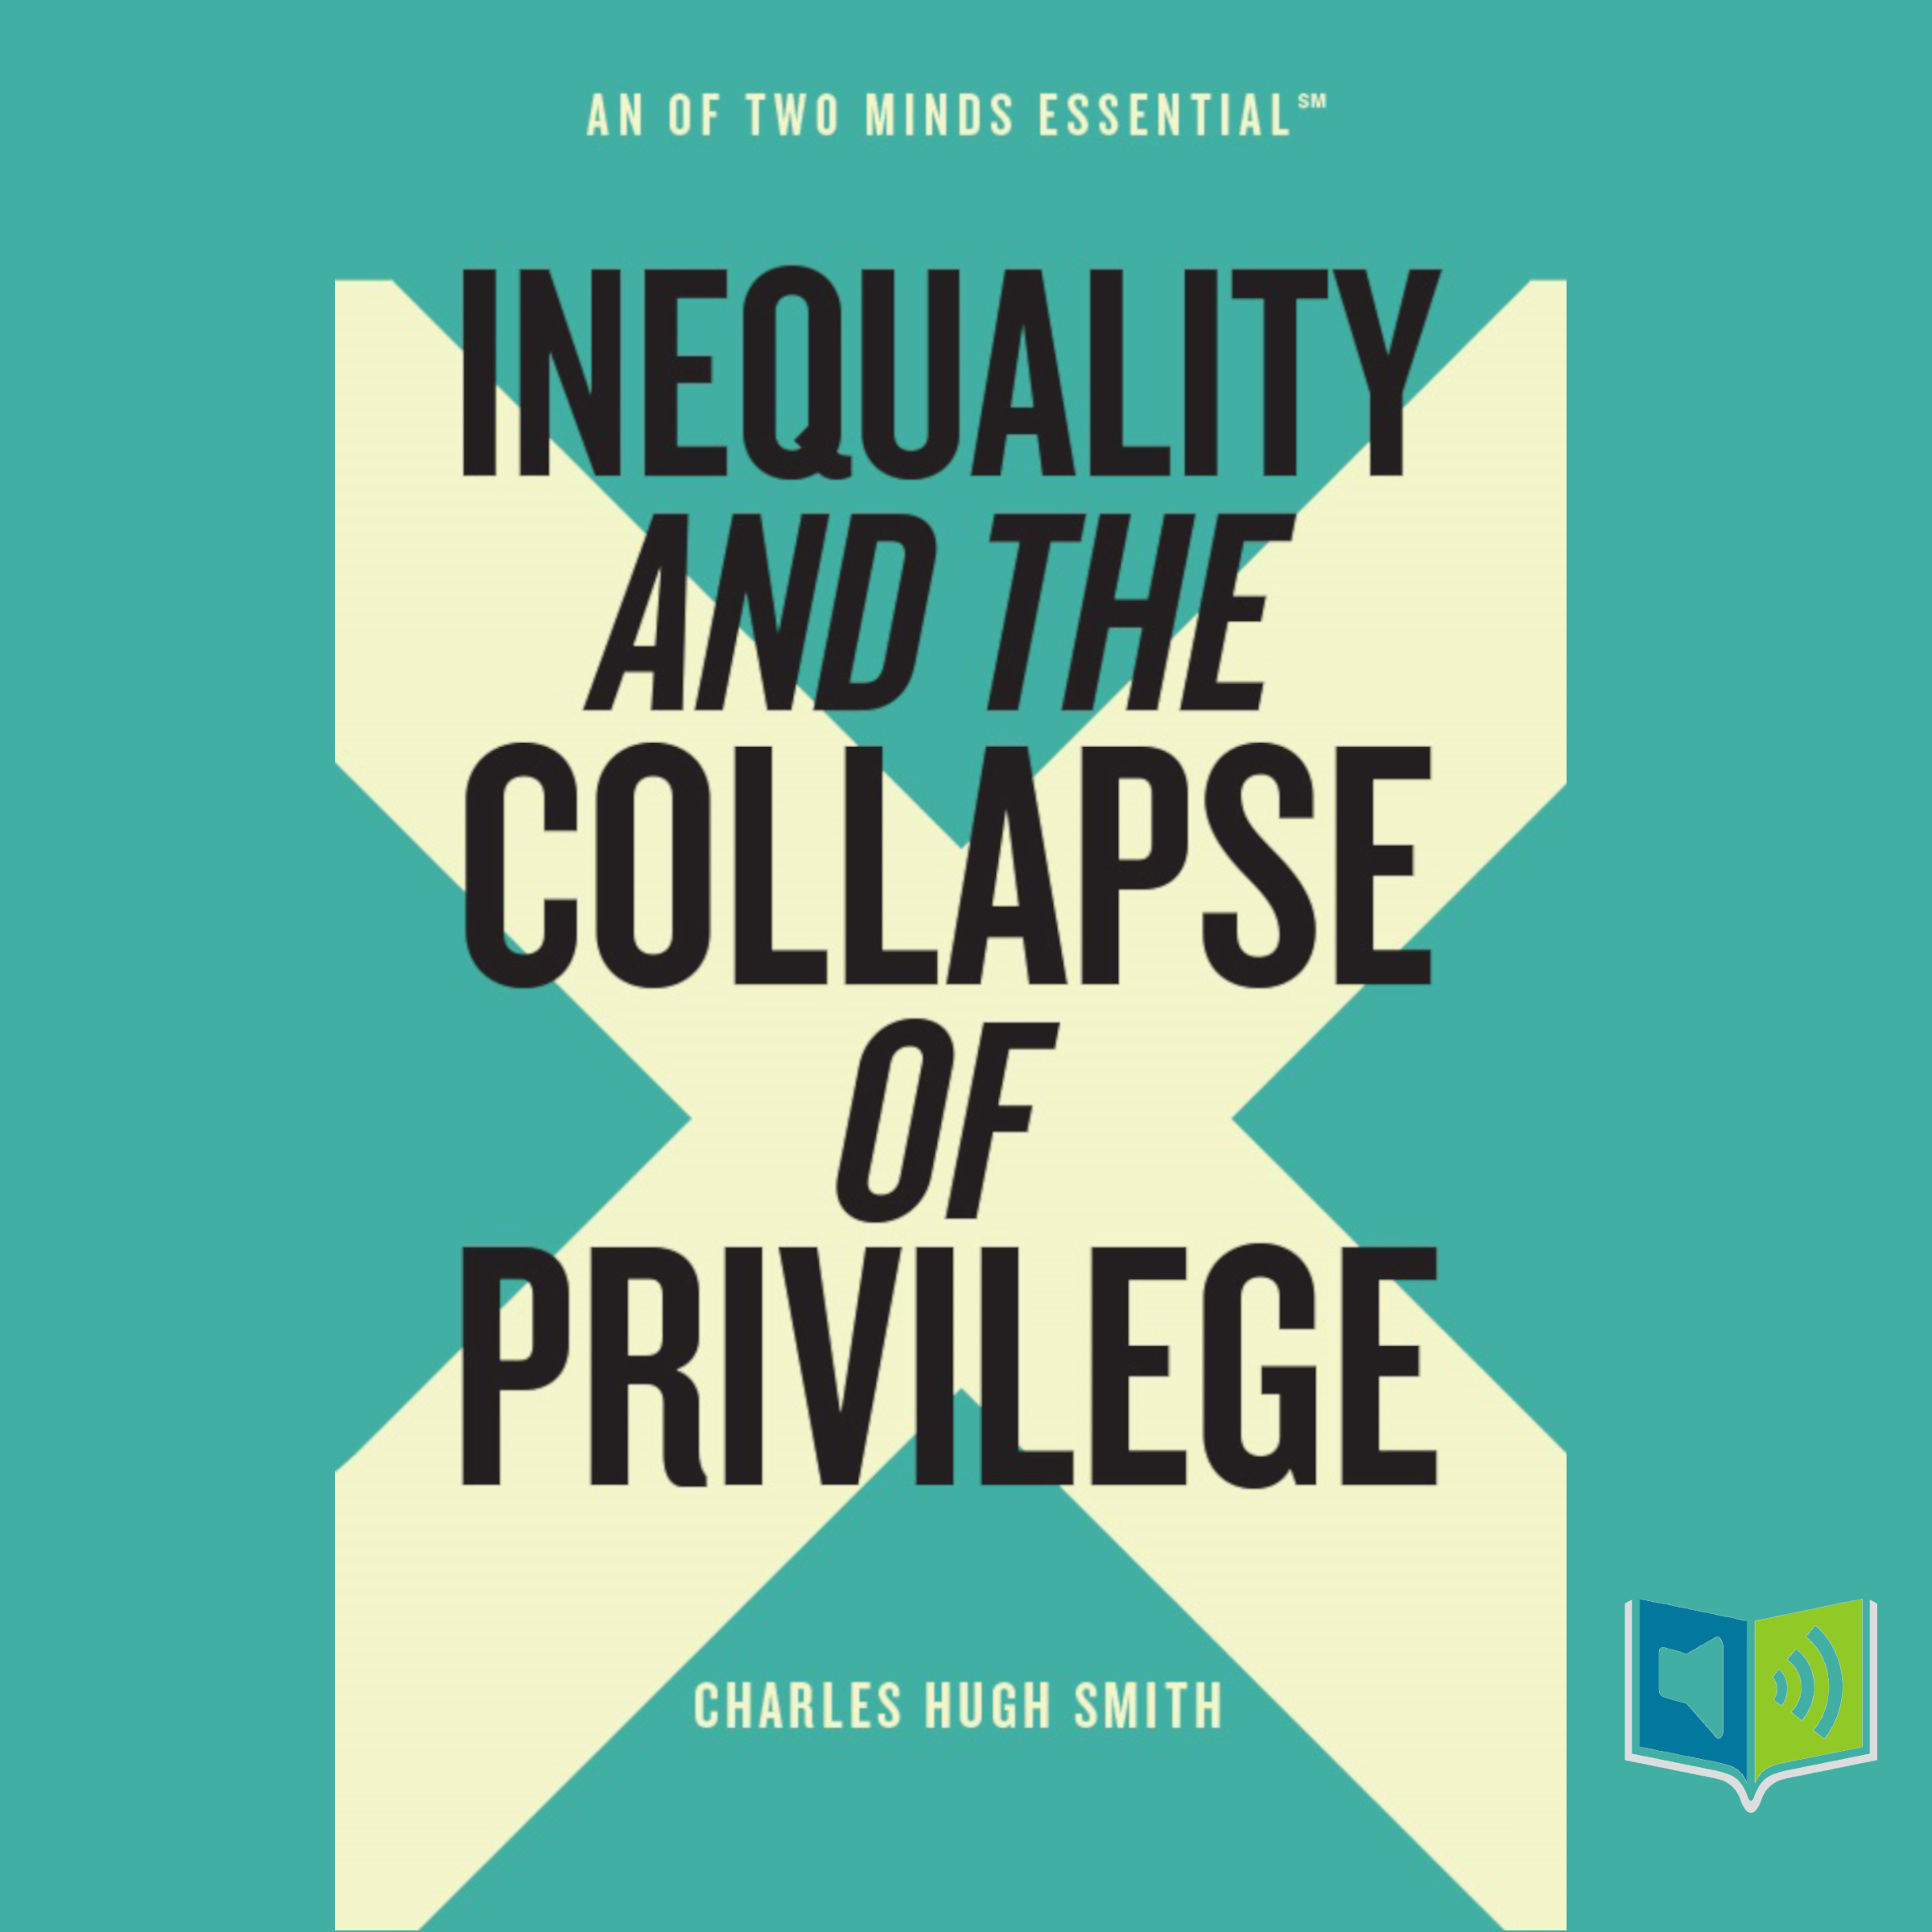 Inequality and the Collapse of Privilege by Charles Hugh Smith